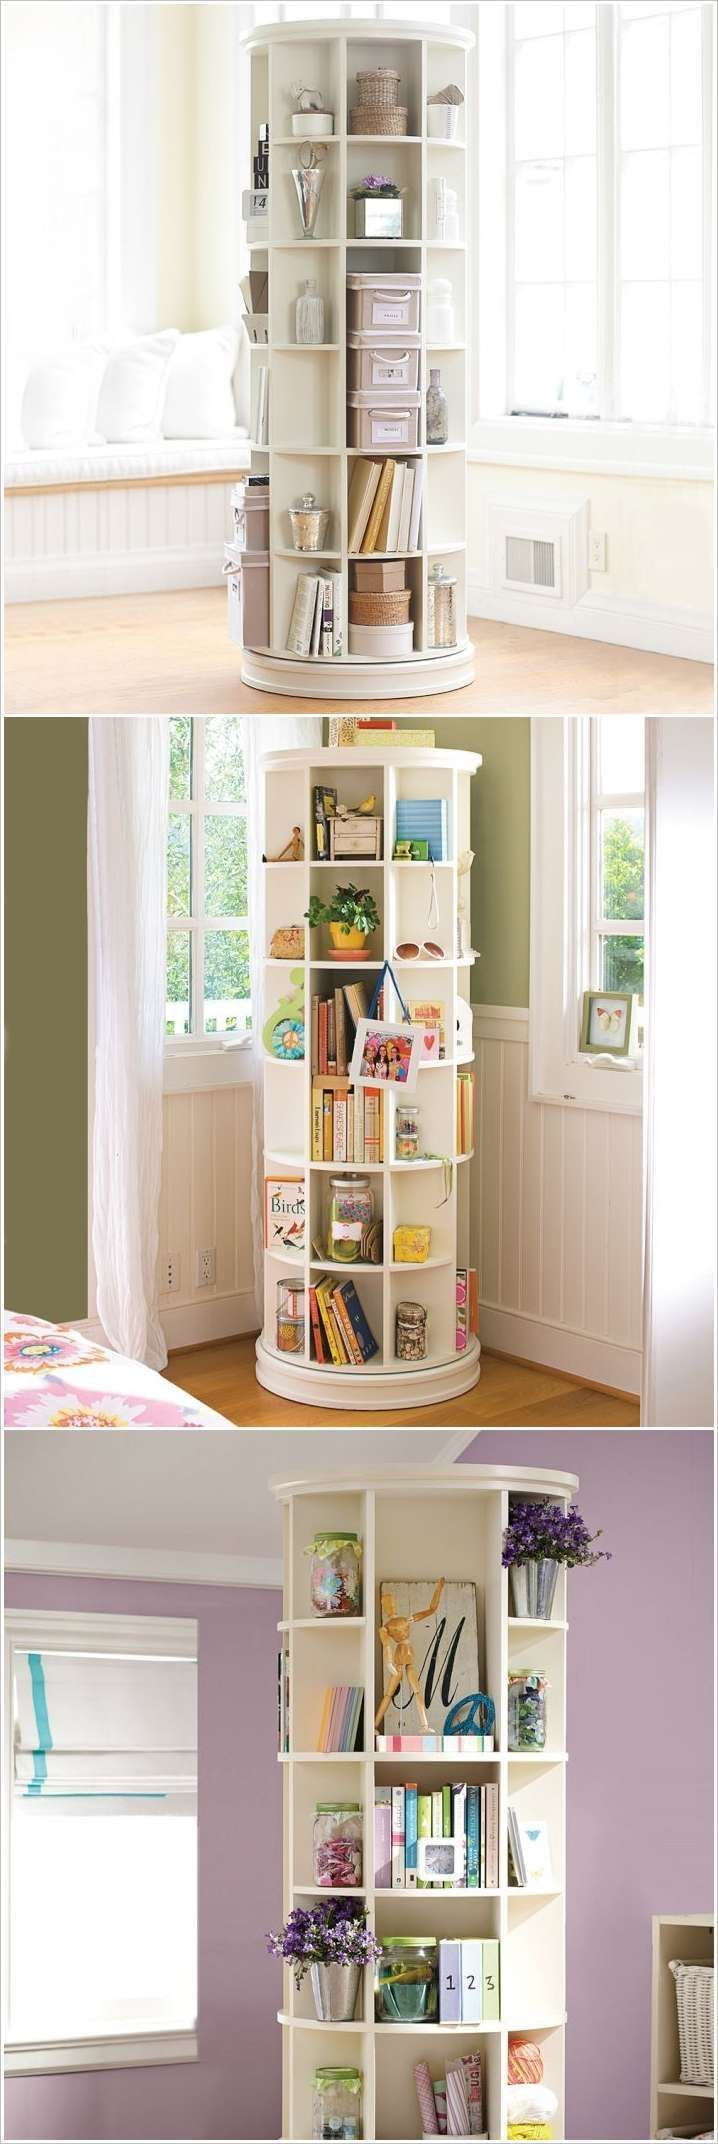 A Revolving Bookcase Loaded with Storage Space...plus more space ...